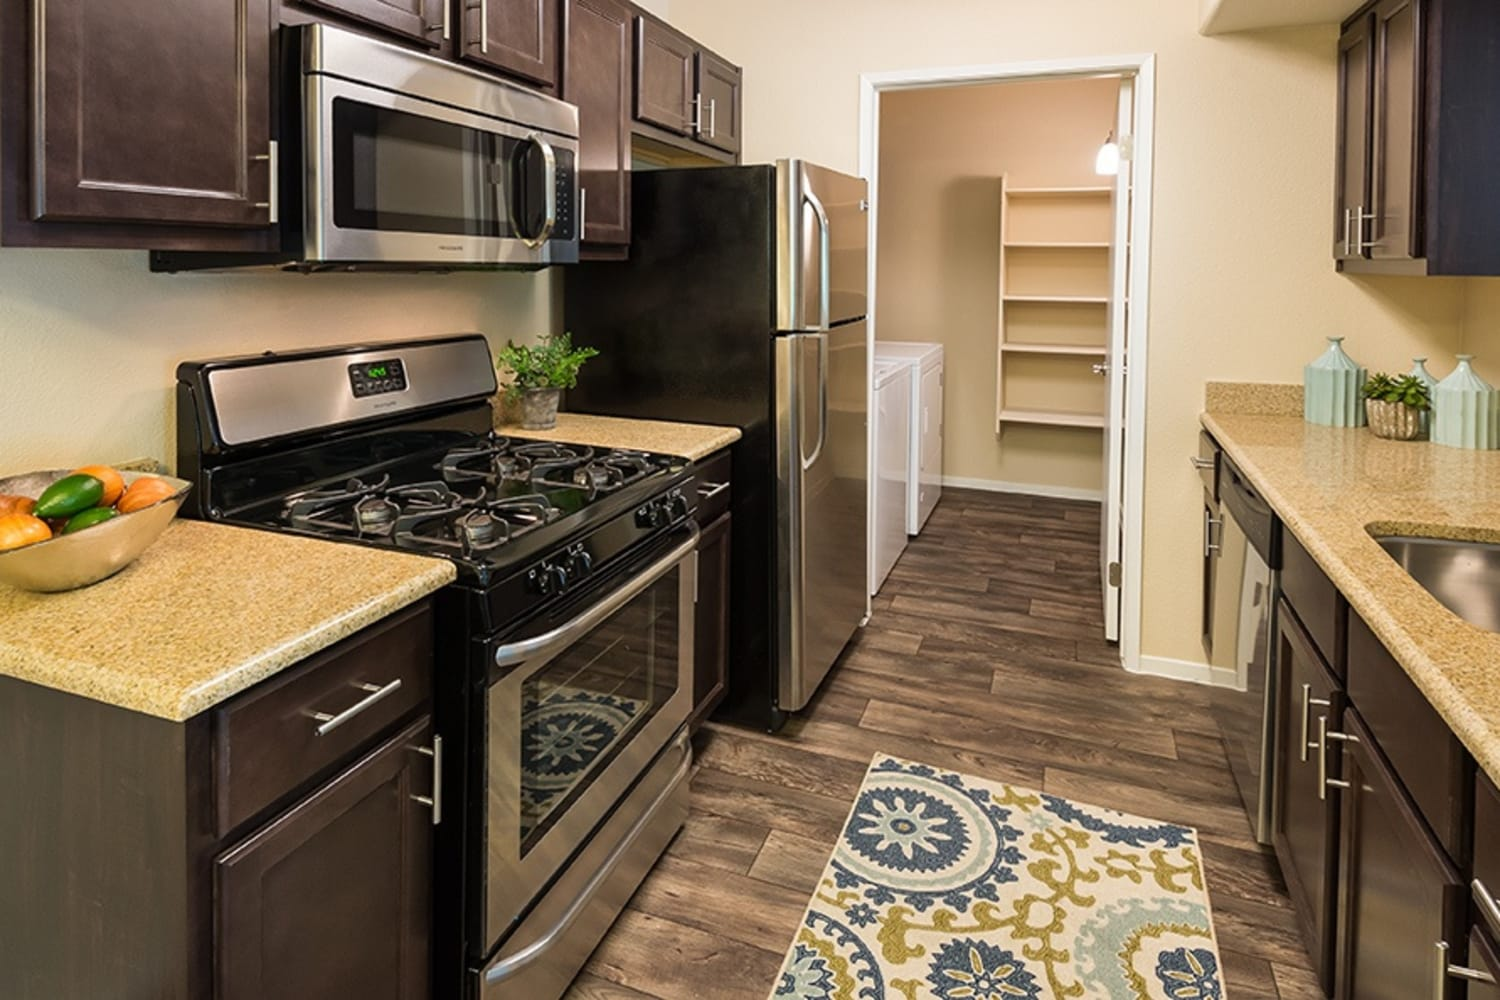 Modern appliances in kitchens at Rancho Destino Apartments in Las Vegas, Nevada